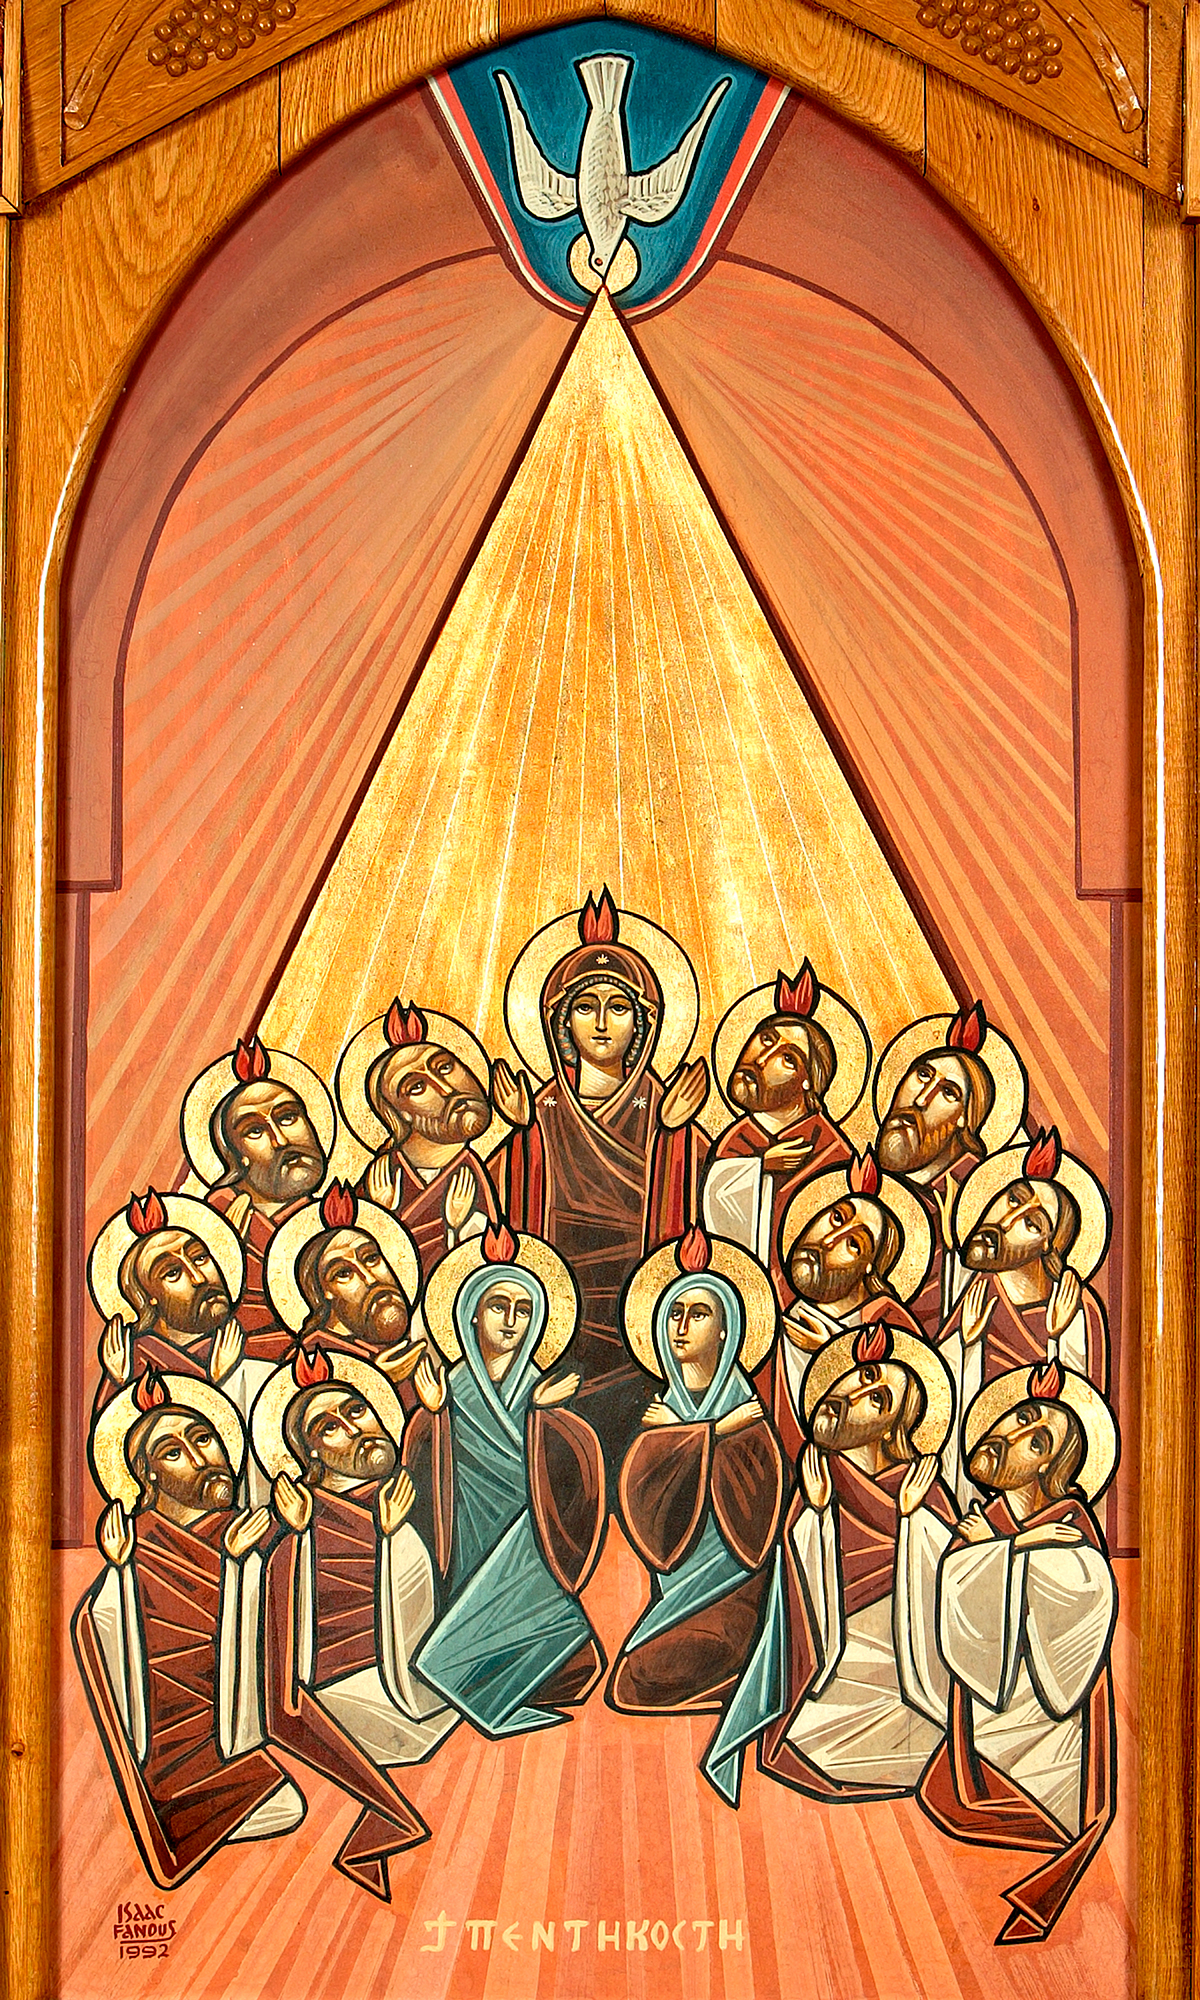 Pentecost: Descent of the Holy Spirit on the Apostles